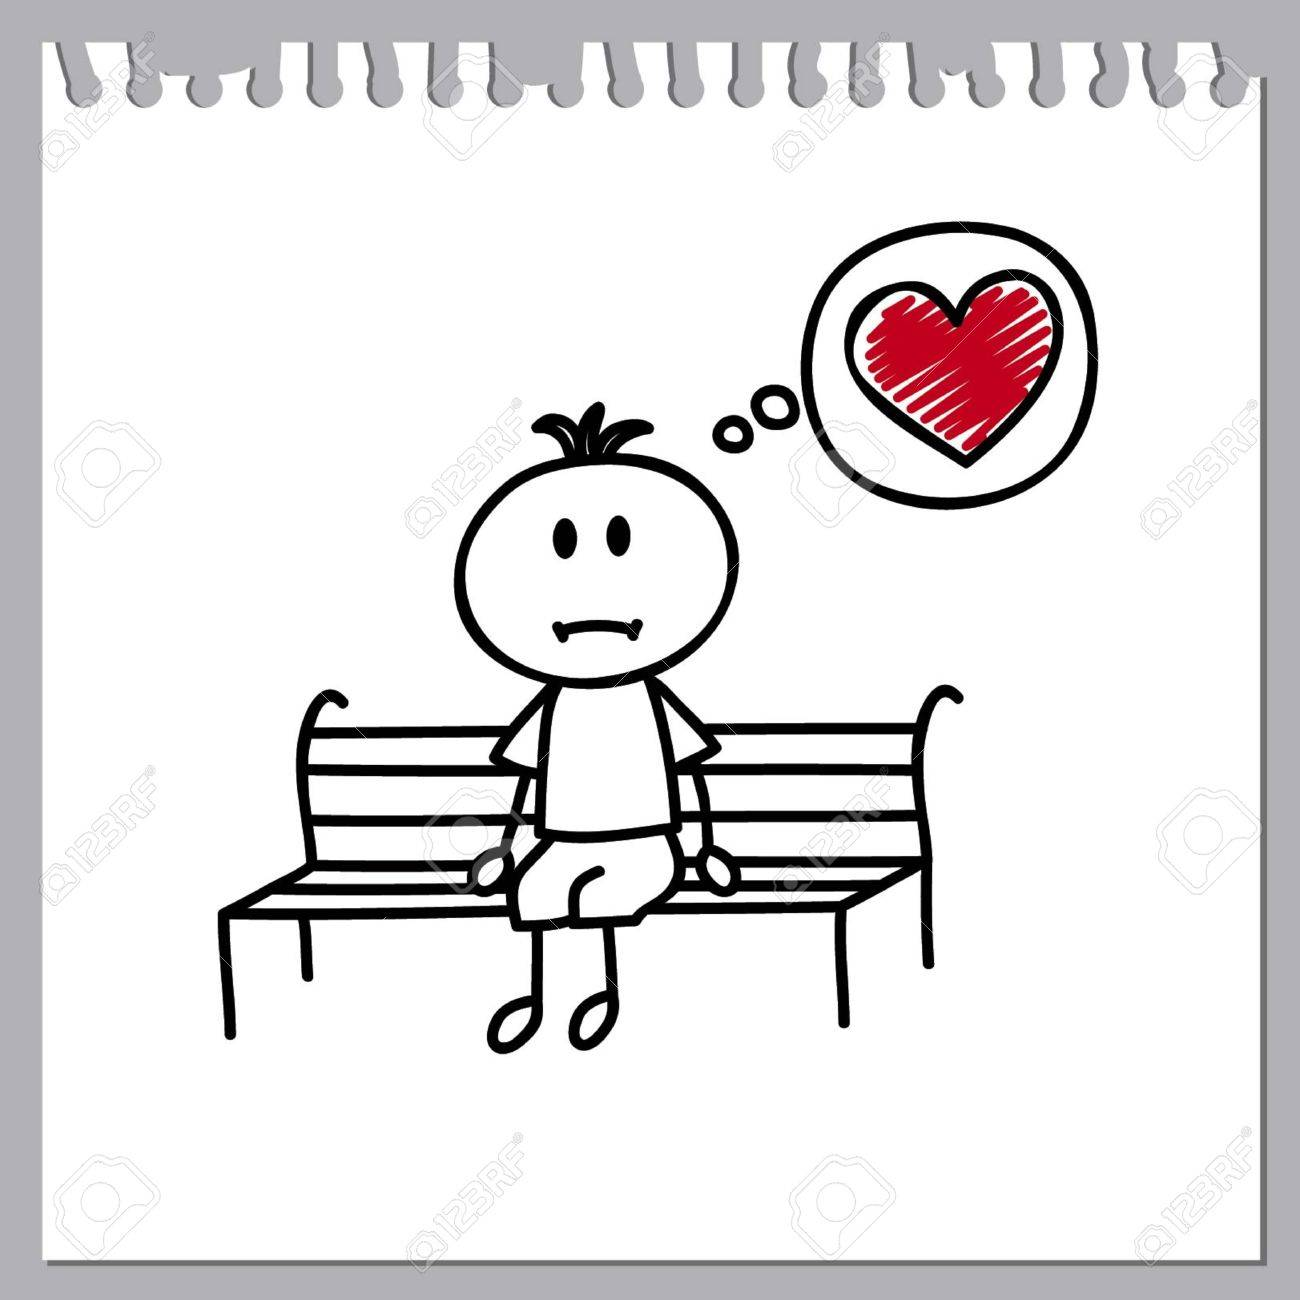 Sad little boy sits on a bench and dreams of lovecartoon doodle stock